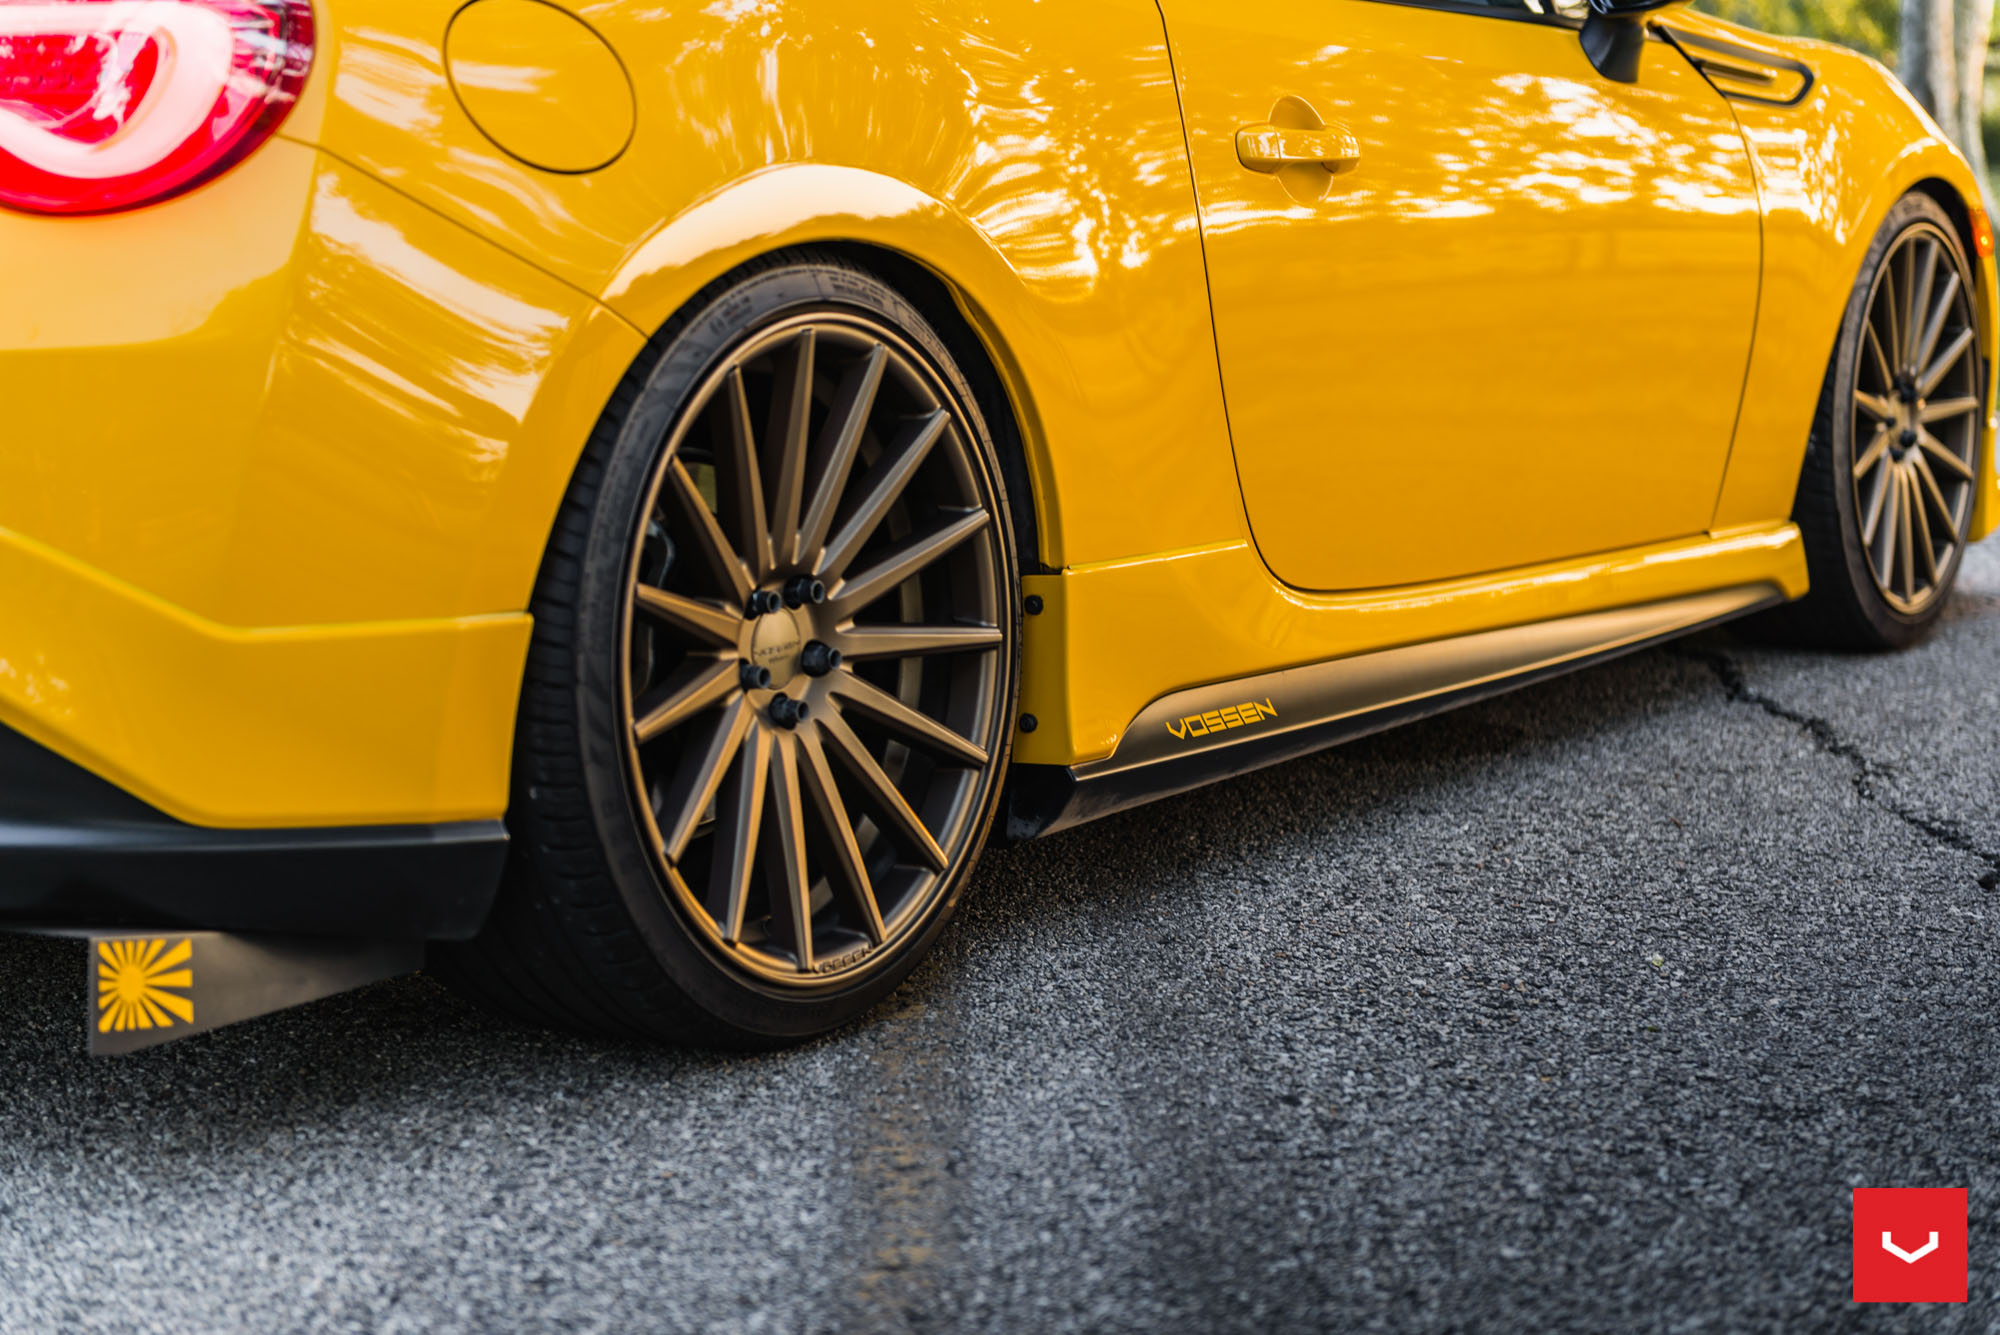 Killer Scion FR-S with TRD Kit Gets Bronze Vossen Wheels - autoevolution